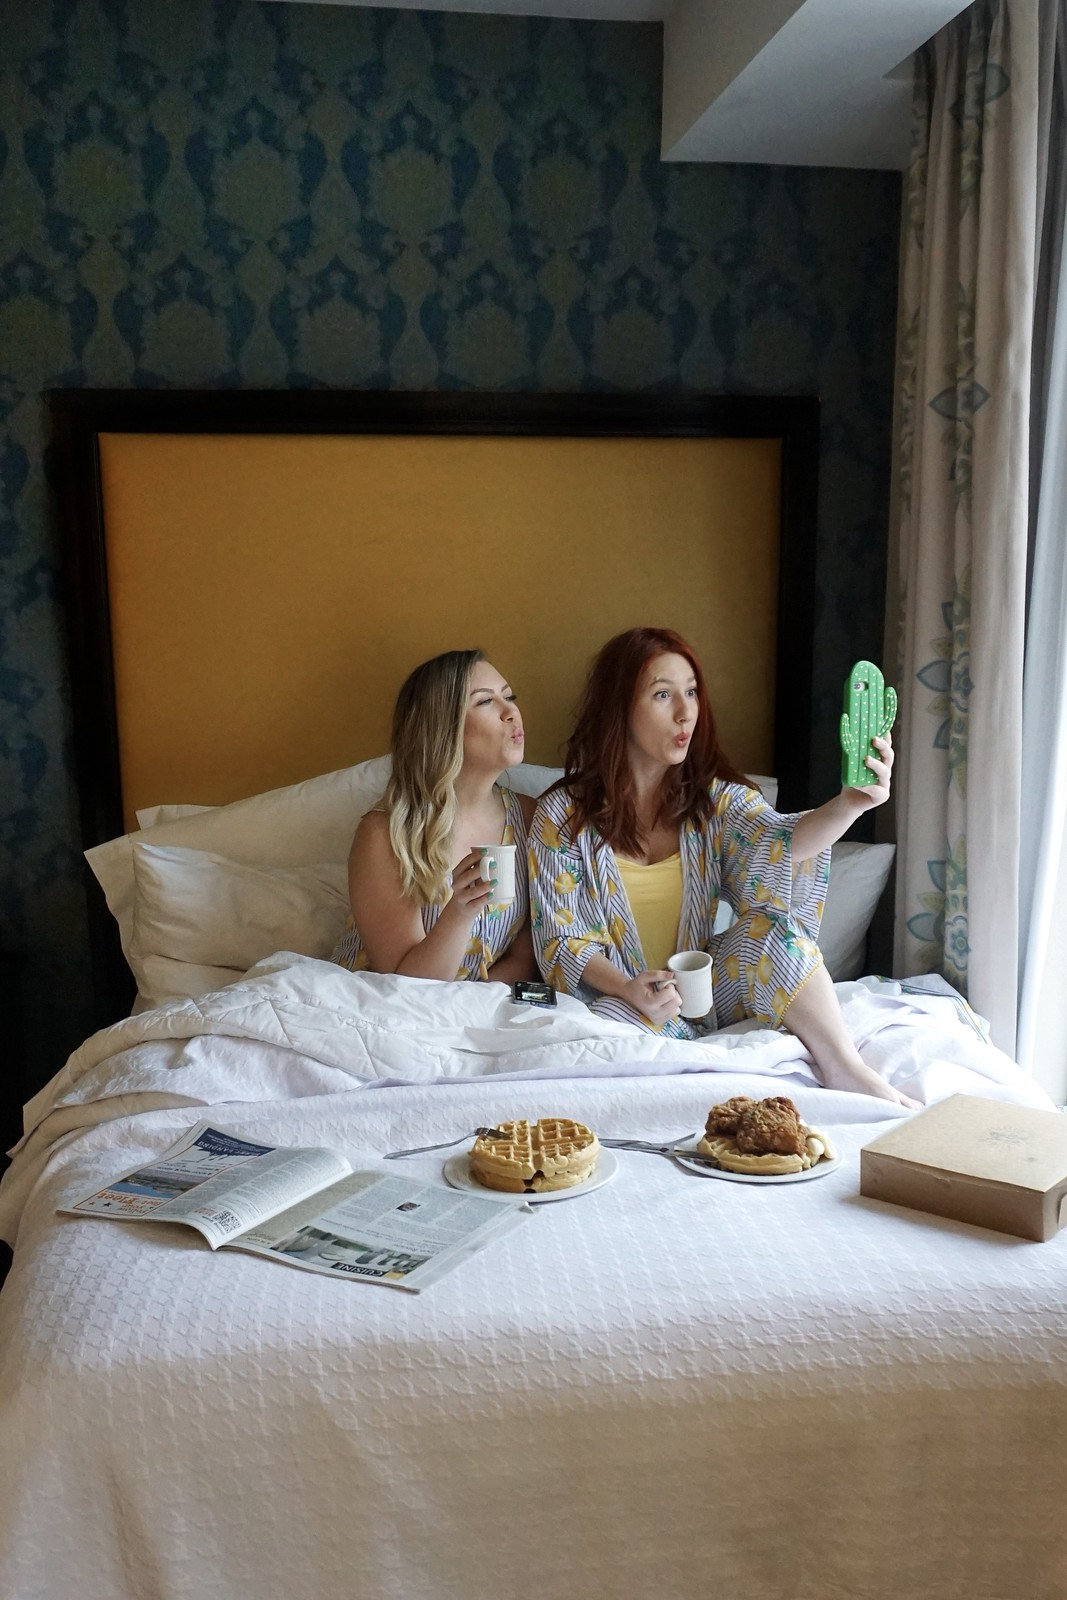 Soma Intimates Lemon Zest Pajamas | Girls Hotel Sleepover | Breakfast in Bed | 5 Reasons to Take a Girls Trip in your 30s | Traveling with Friends | Girls Only Sleepover | Girlfriend Getaways in the United States | Trip to take with your BFF